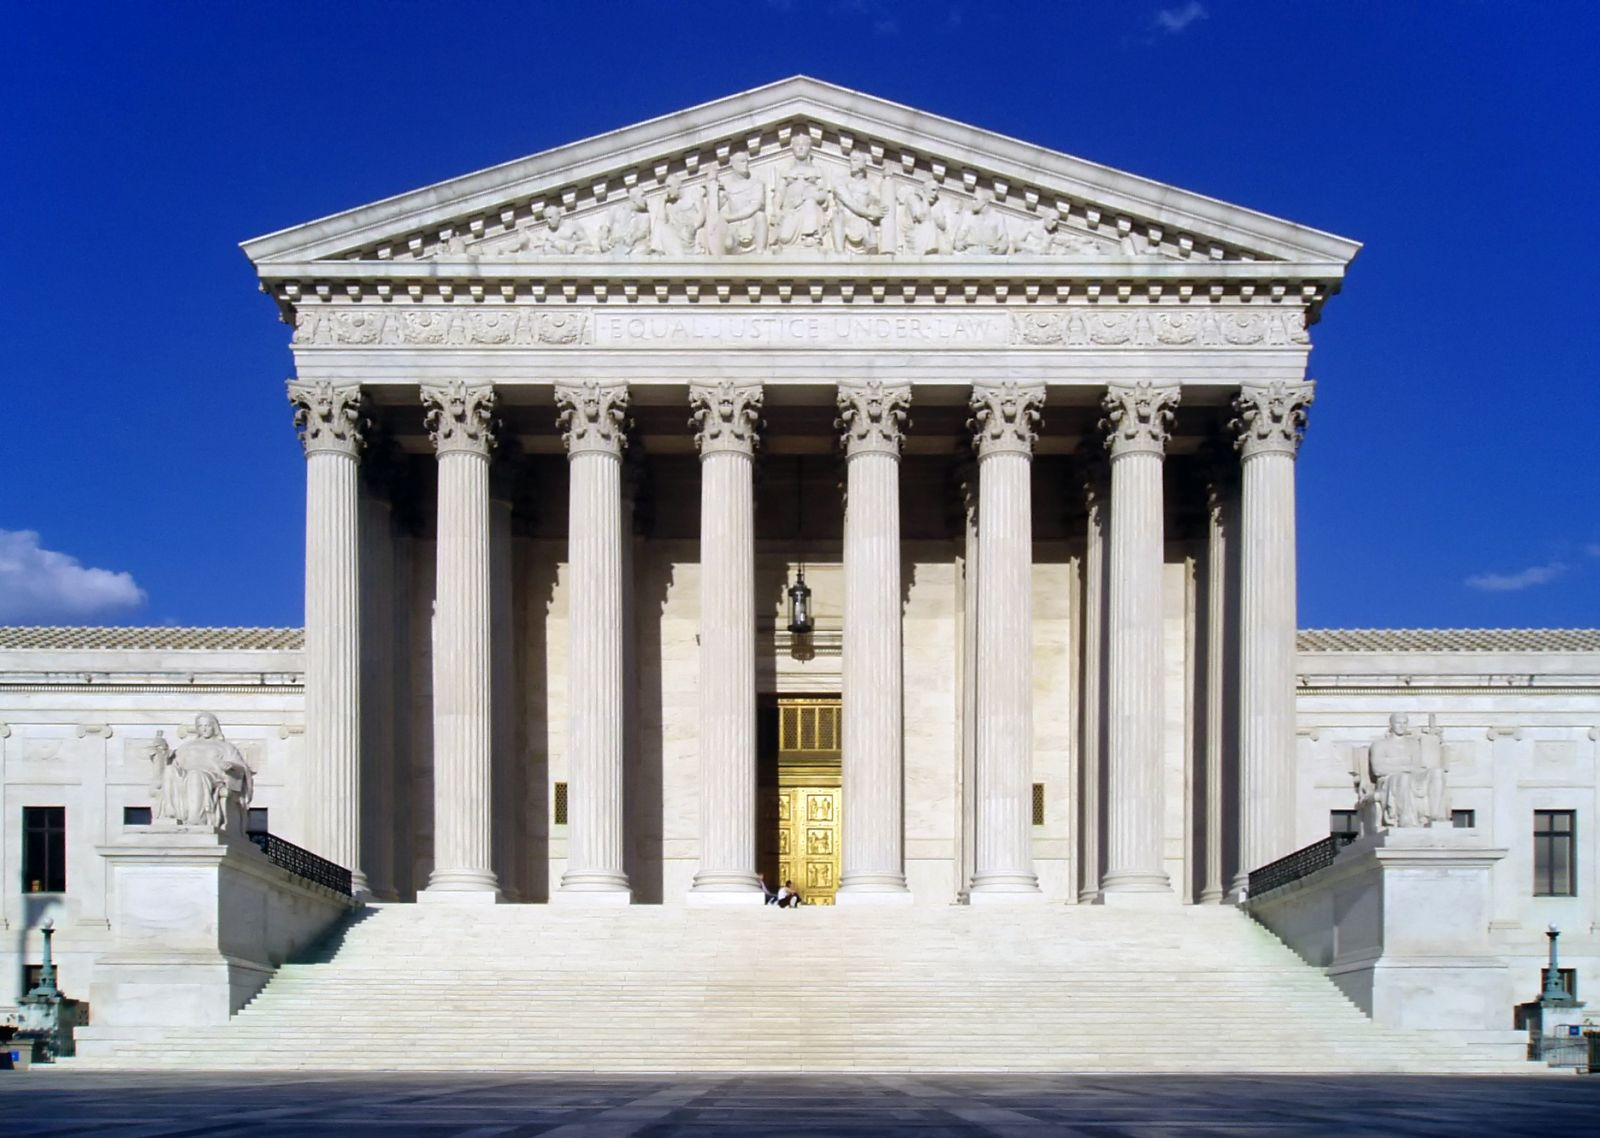 http://upload.wikimedia.org/wikipedia/commons/d/d8/USSupremeCourtWestFacade.JPG